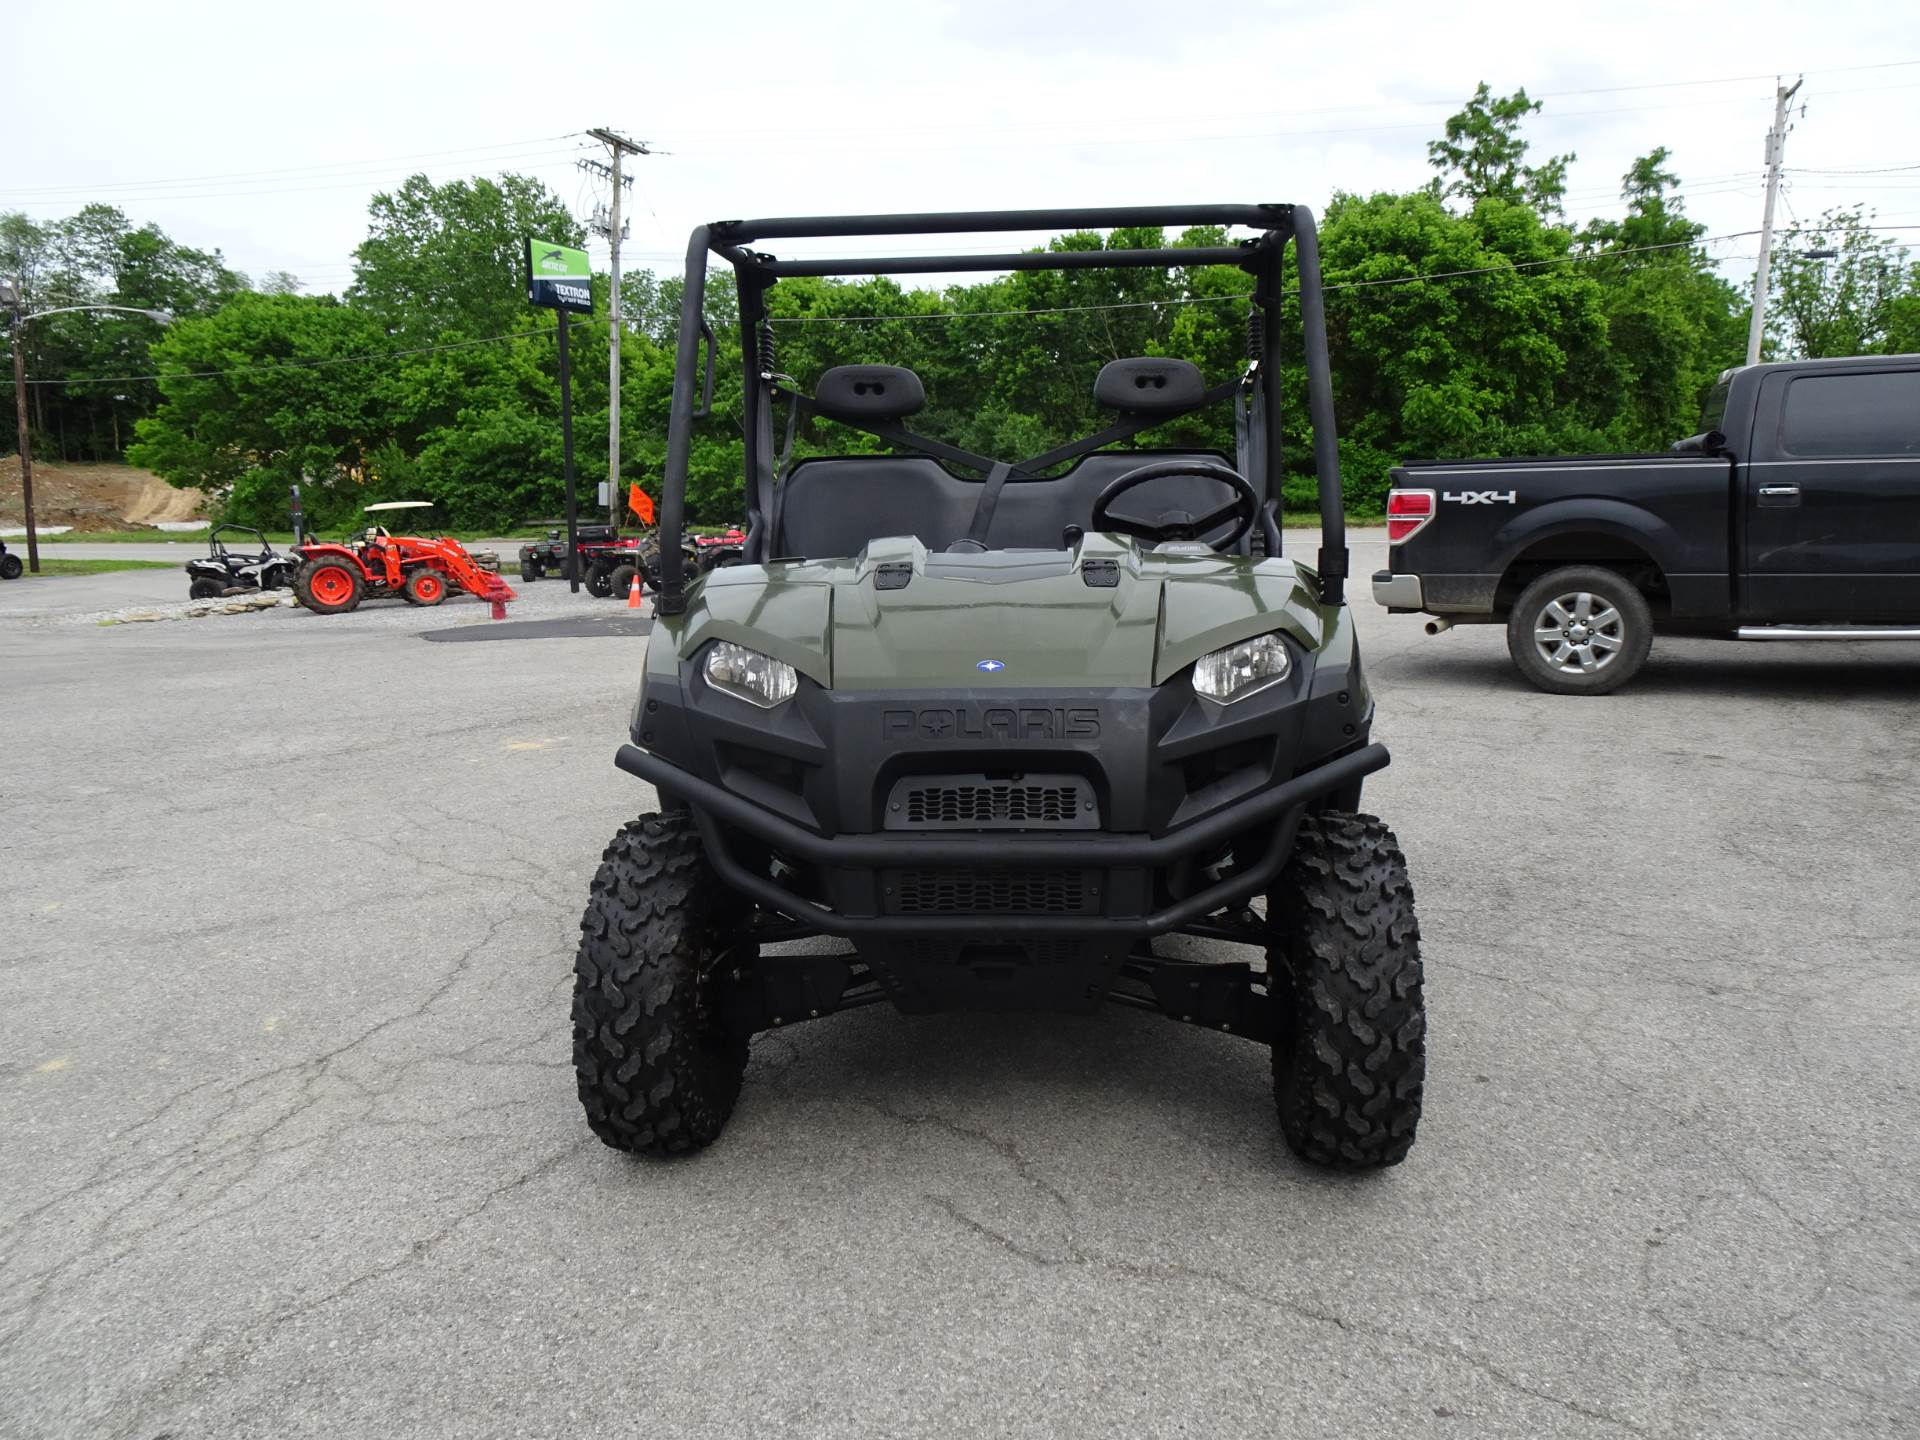 2012 Polaris Ranger® HD 800 in Georgetown, Kentucky - Photo 8